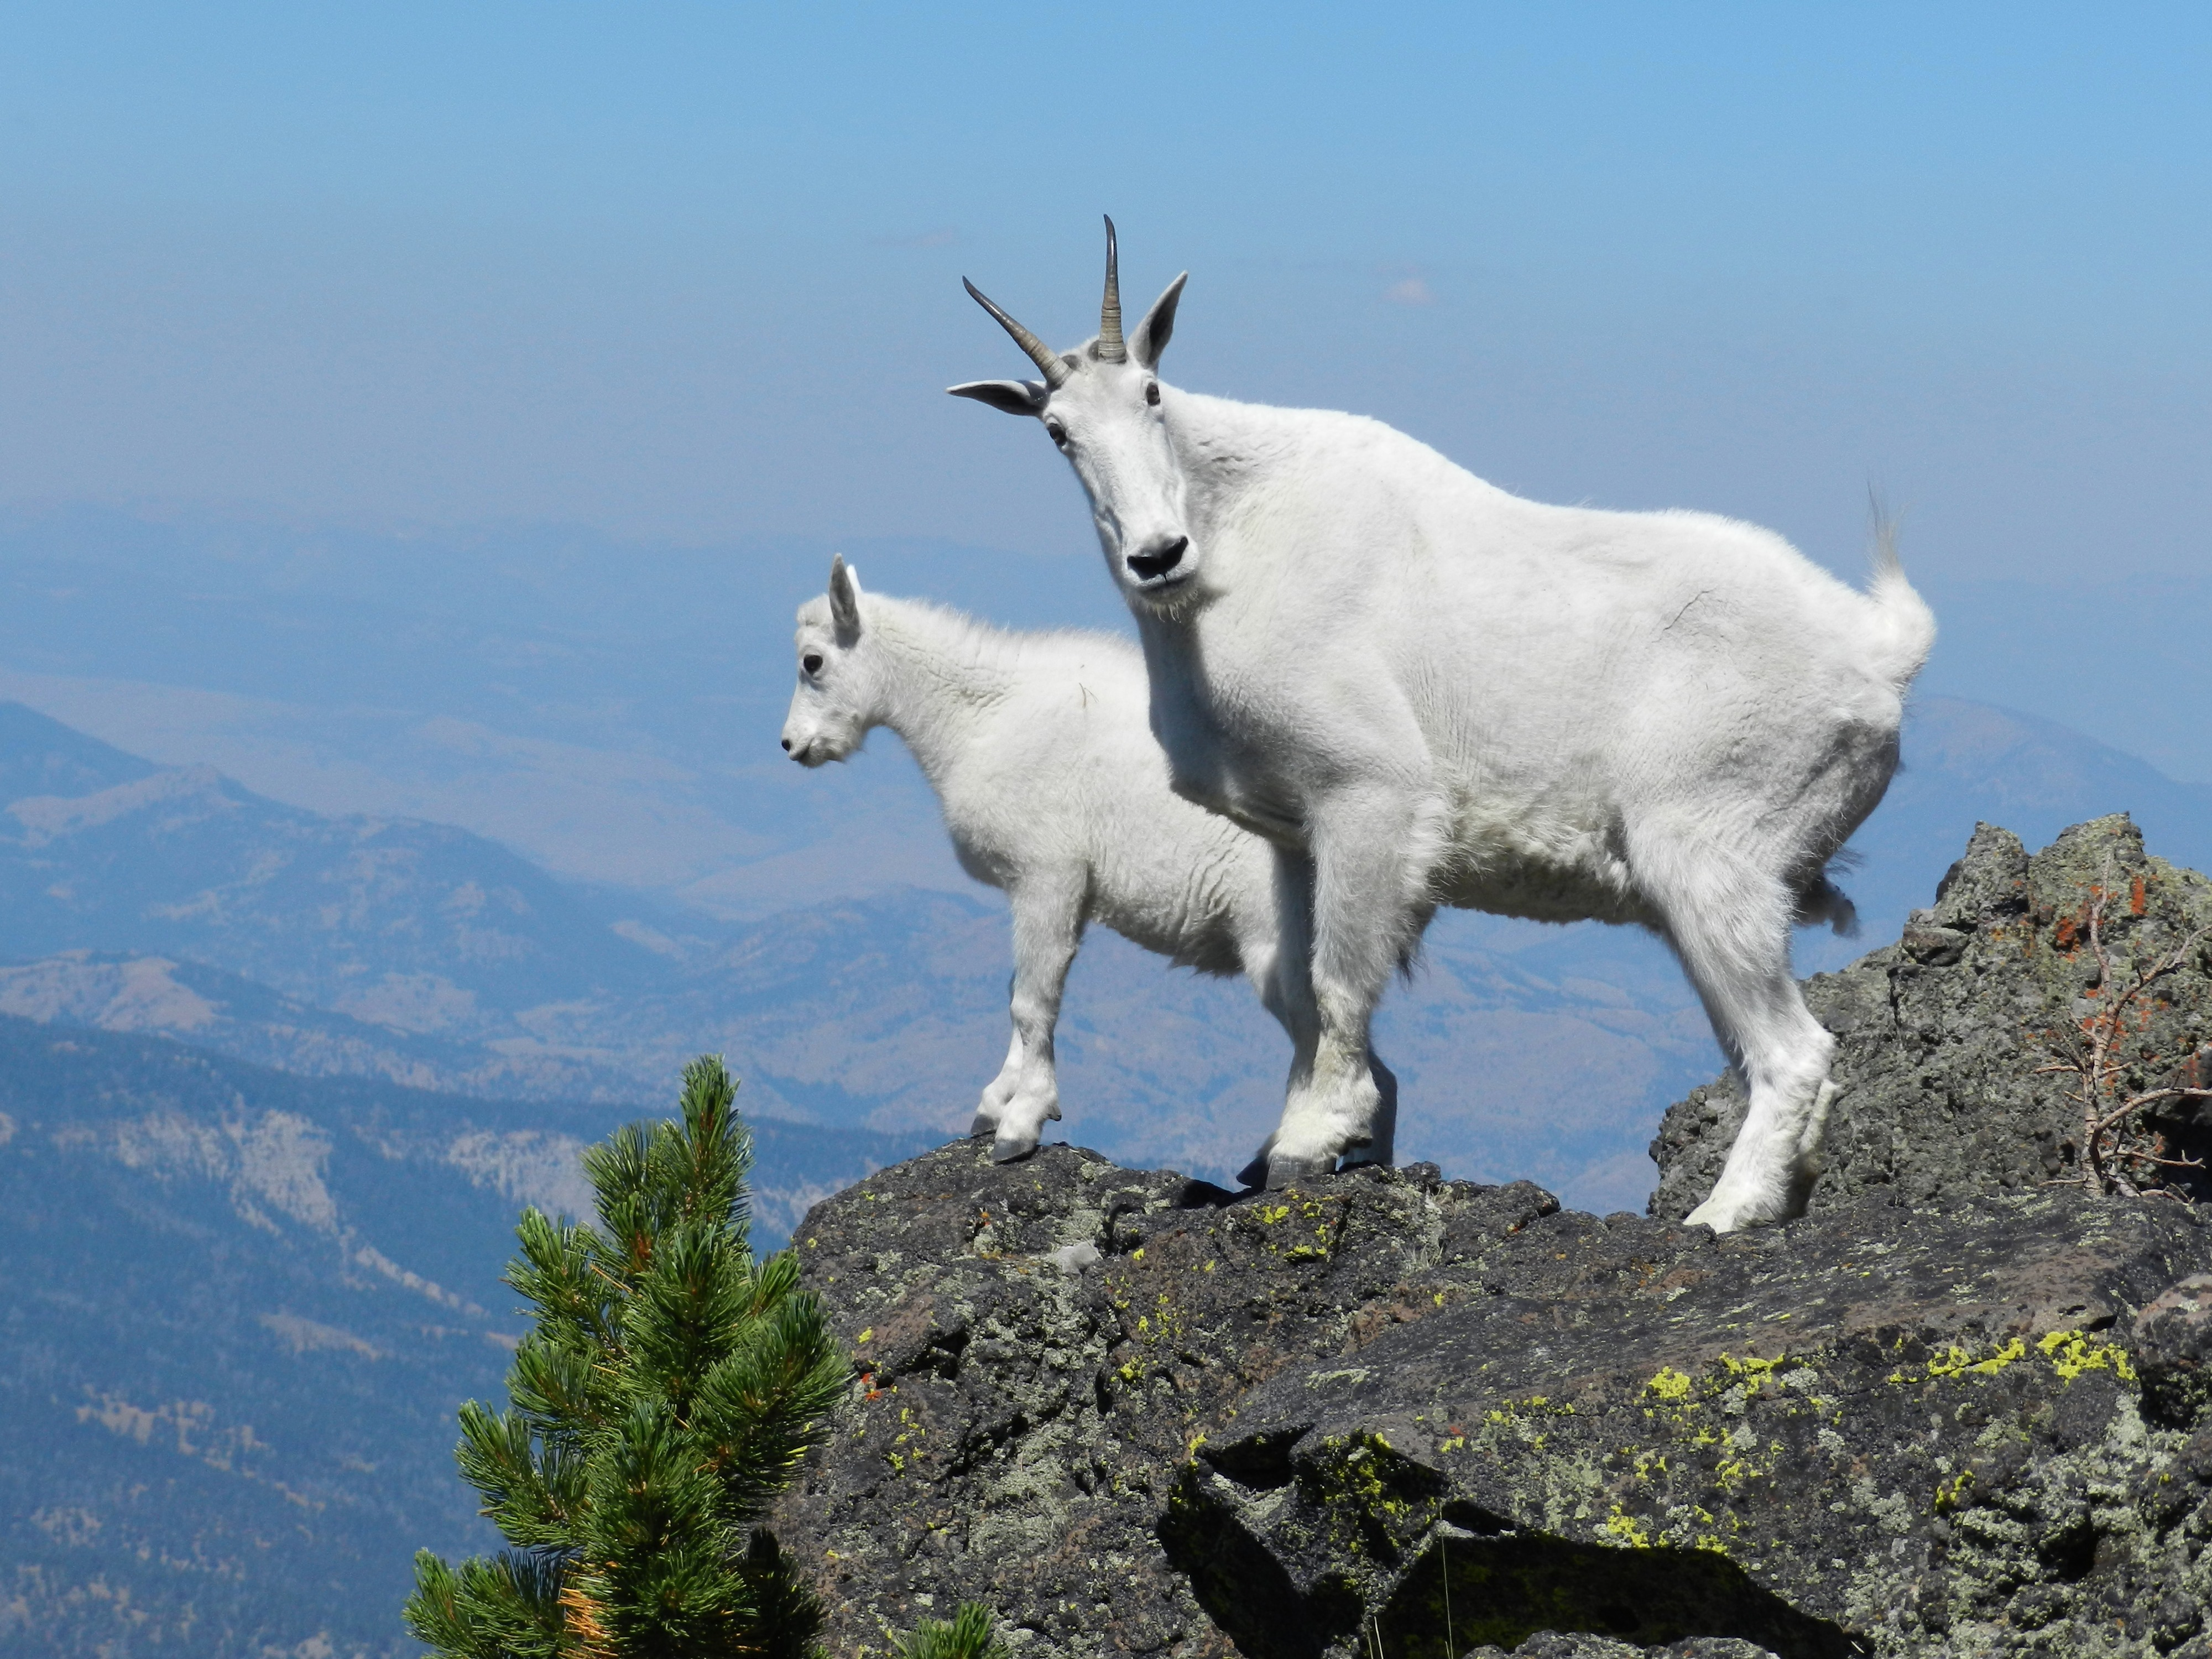 How do Mountain goats get their incredible cliff-climbing skills ...